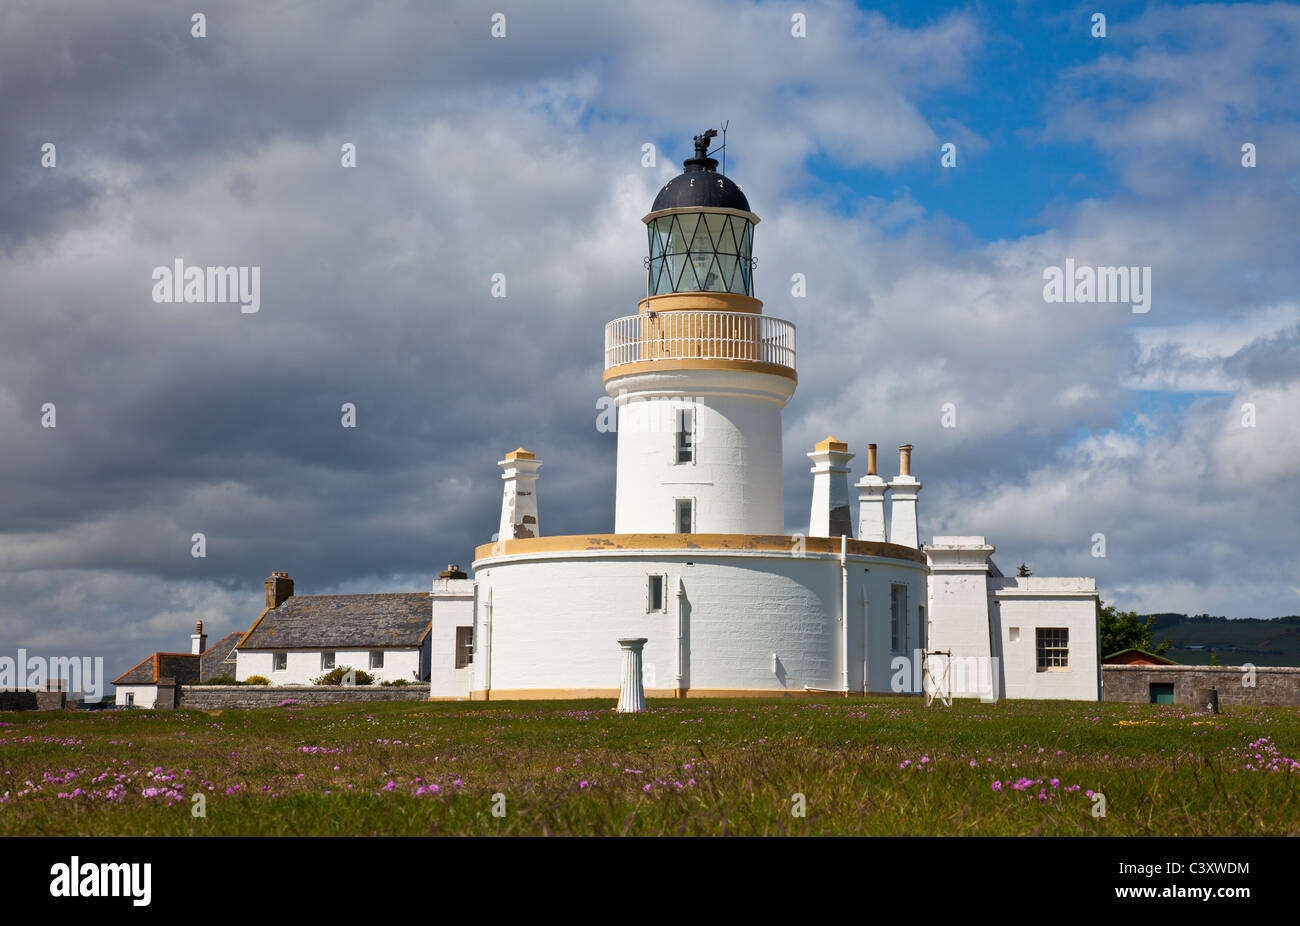 Lighthouse at Chanonry Point on the Black Isle near Inverness, Scotland, UK. Built in 1846, unmanned and automated - Stock Image